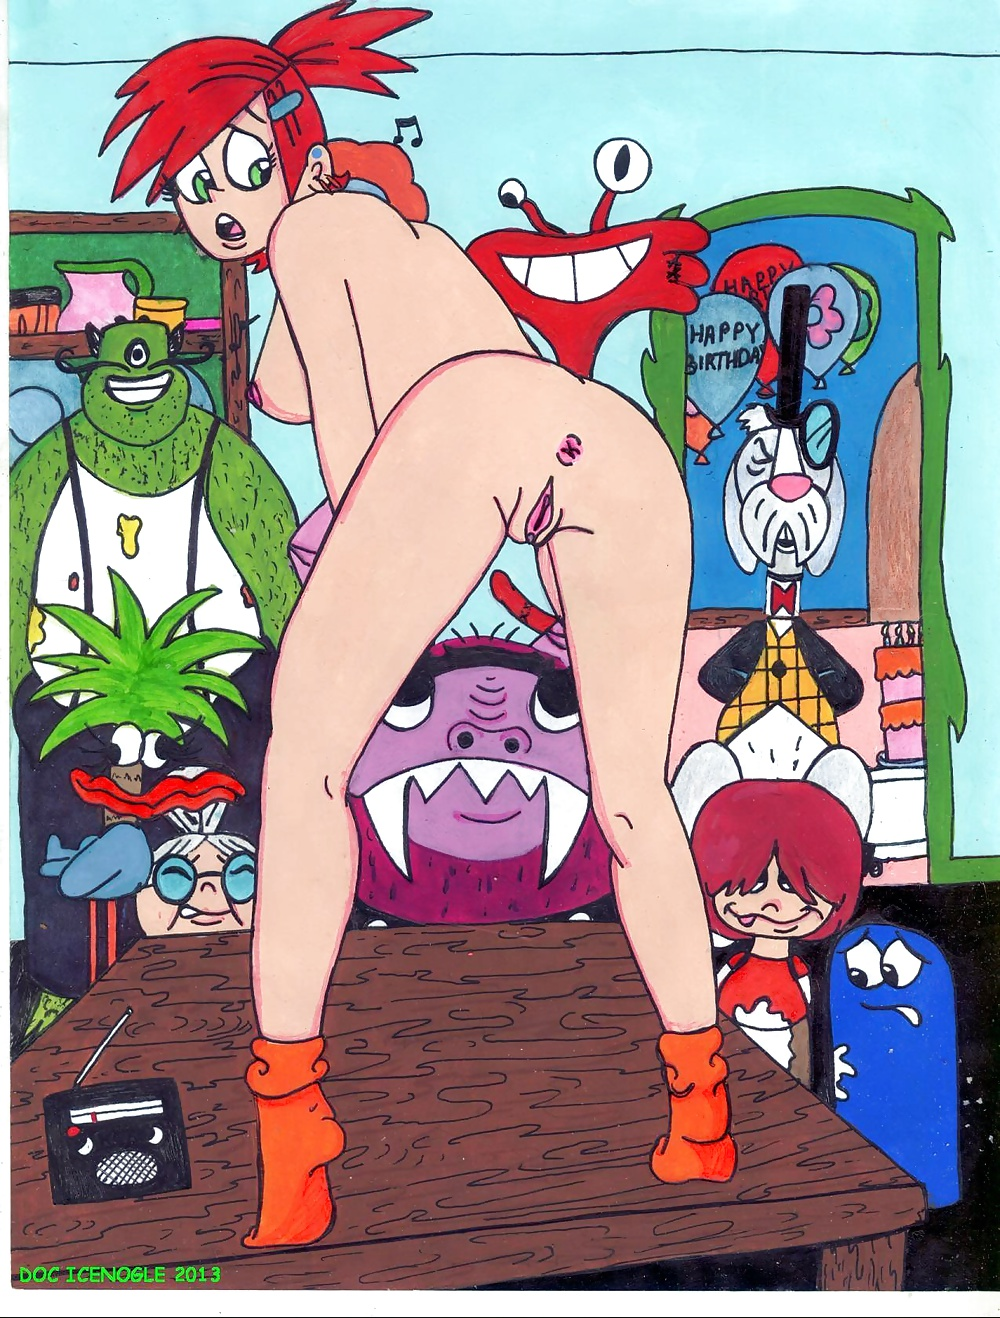 sex-pleasure-fosters-home-imaginary-friends-hentai-nude-supergirl